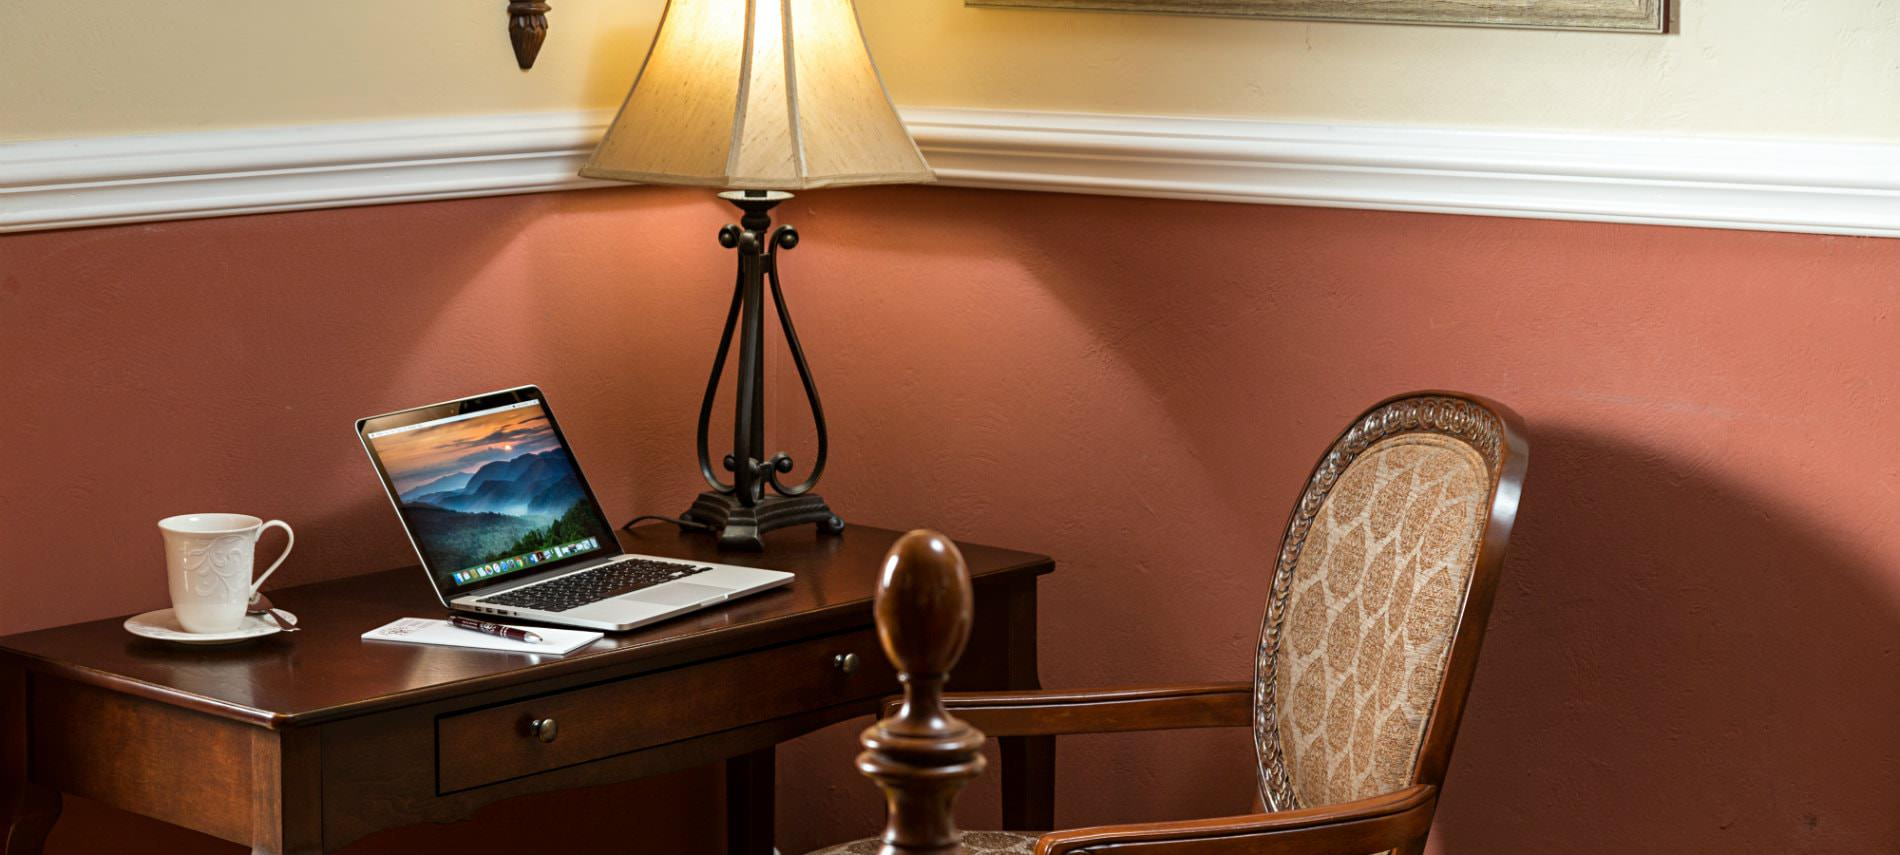 Terracotta and cream room, small wood desk and chair in the corner with laptop and white cup and saucer